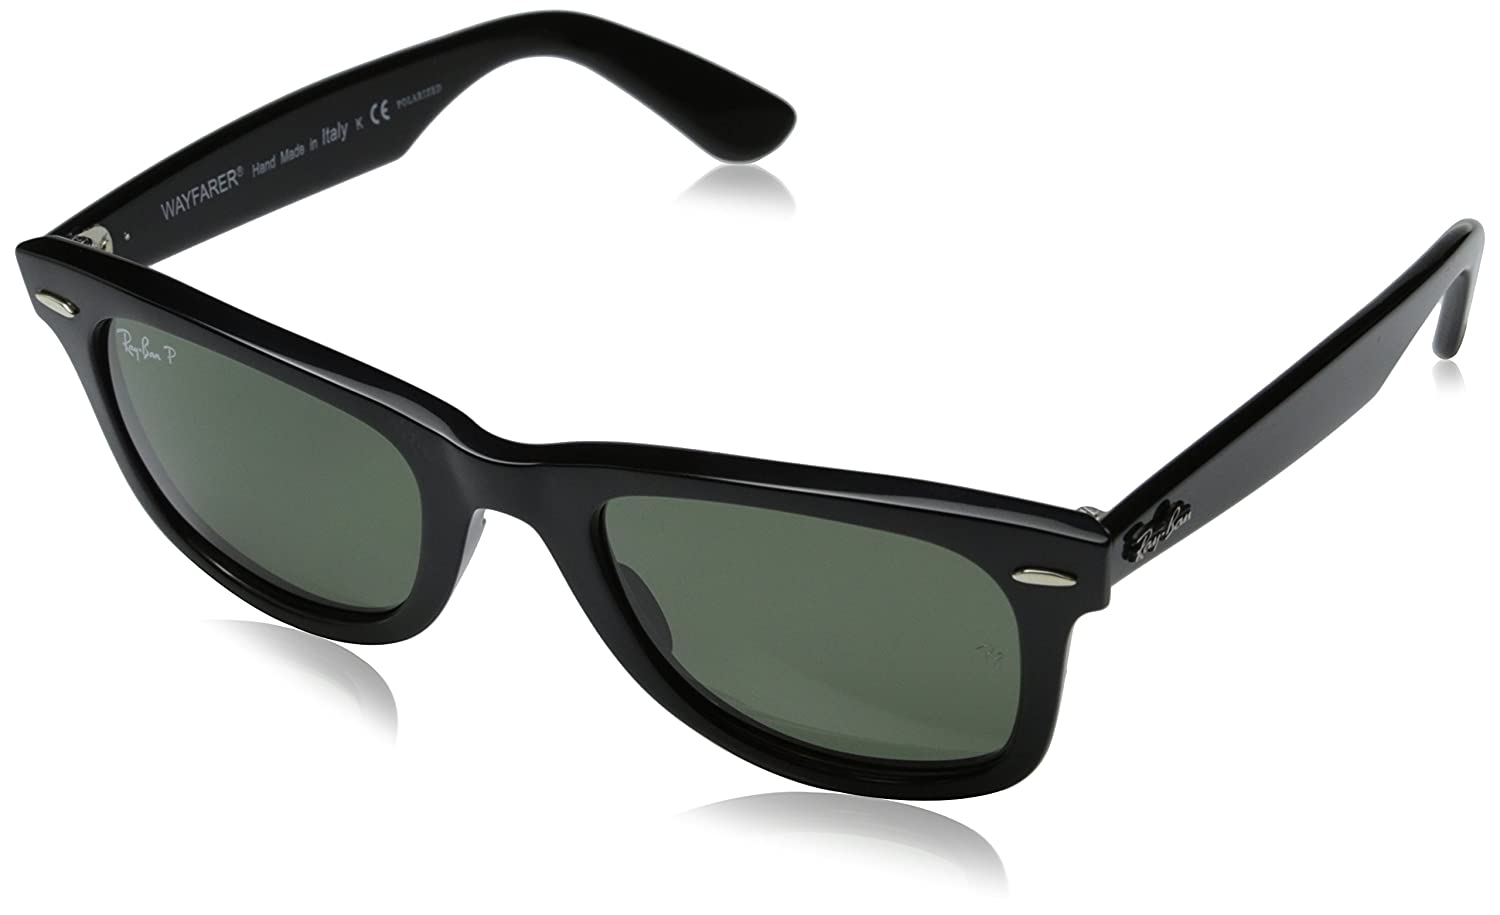 17877c3aee Amazon.com  Ray-Ban Wayfarer - Black Frame Crystal Green Polarized Lenses